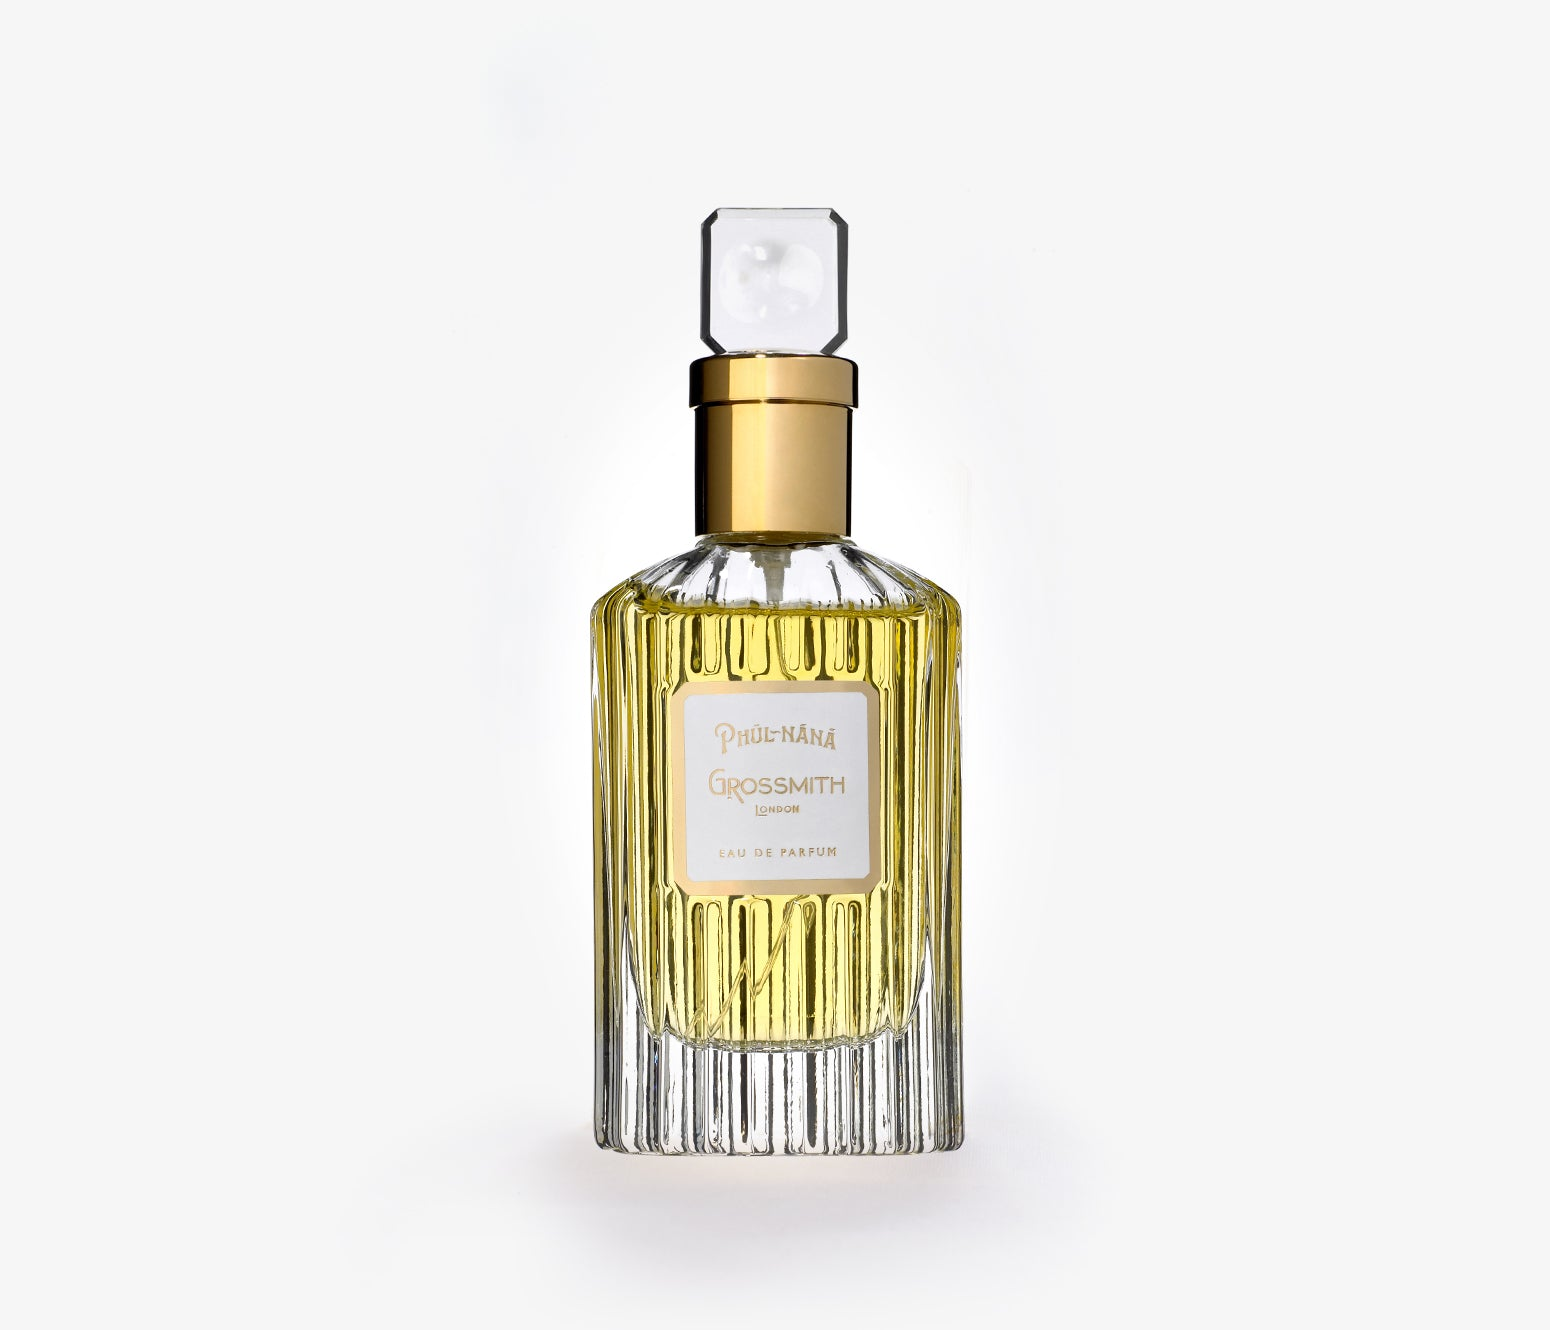 Grossmith London - Phul-Nana - 100ml - AYW2641 - product image - Fragrance - Les Senteurs